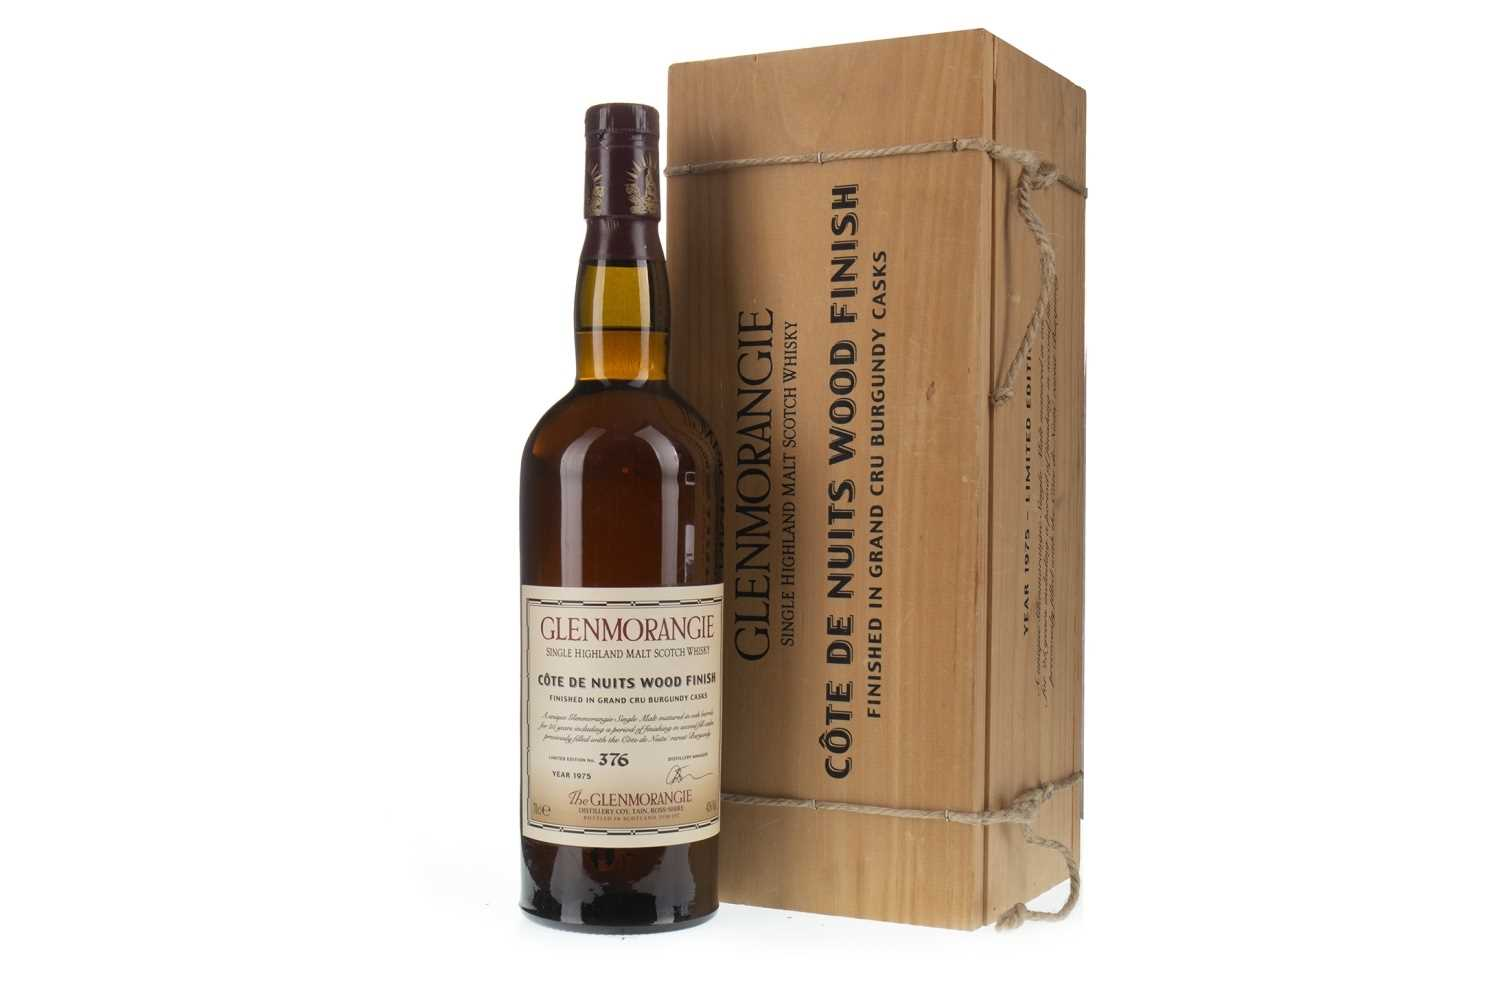 Lot 6-GLENMORANGIE 1975 COTES DE NUITS AGED OVER 25 YEARS